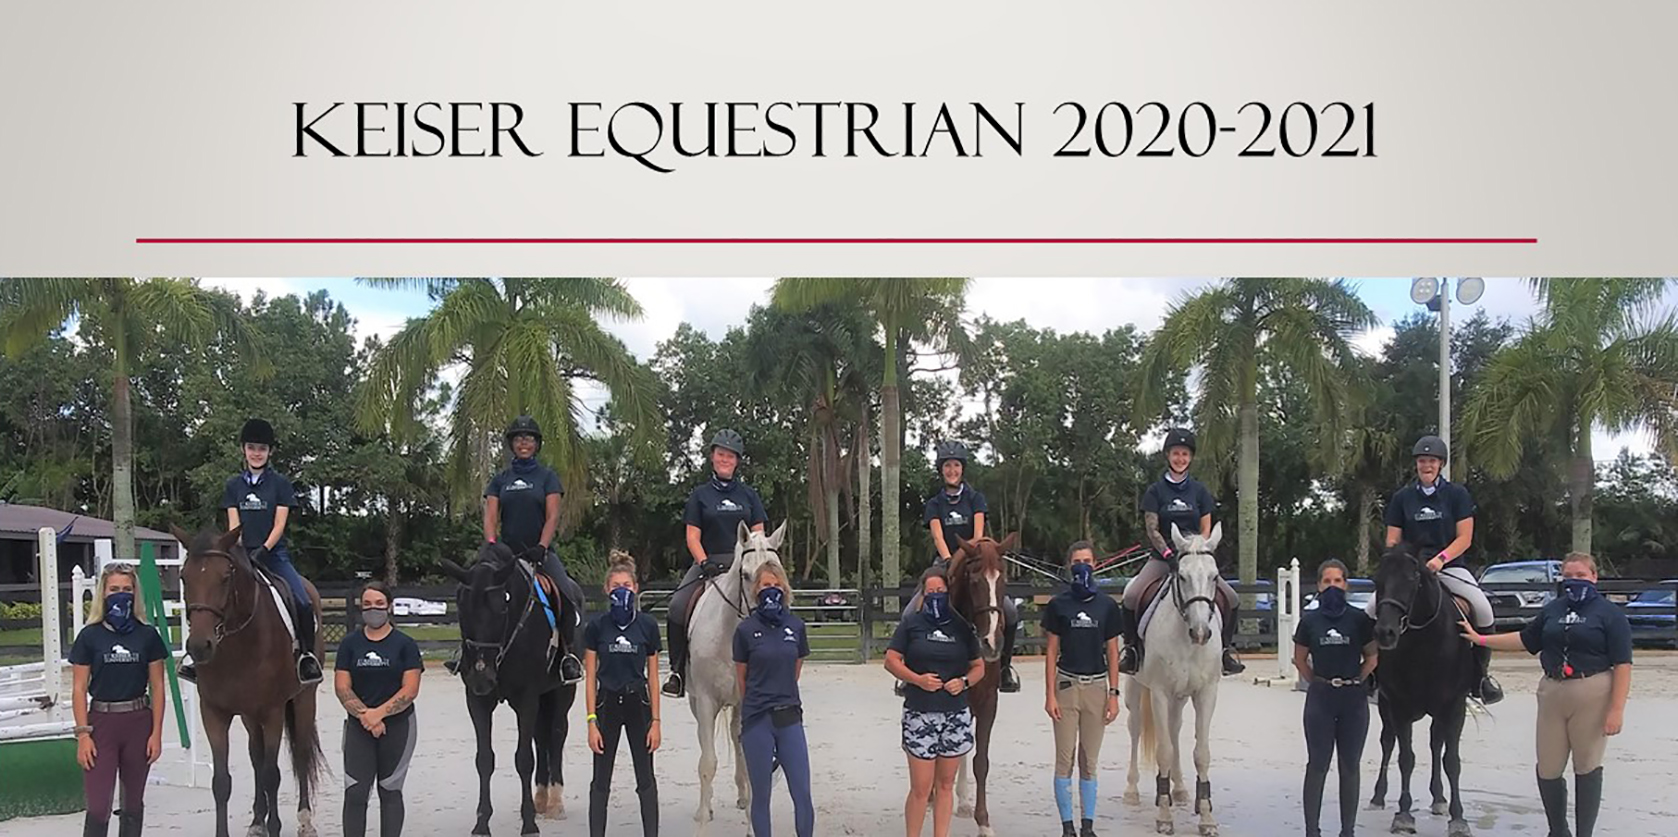 Keiser University Equestrian Students Prepare for an Exciting Year